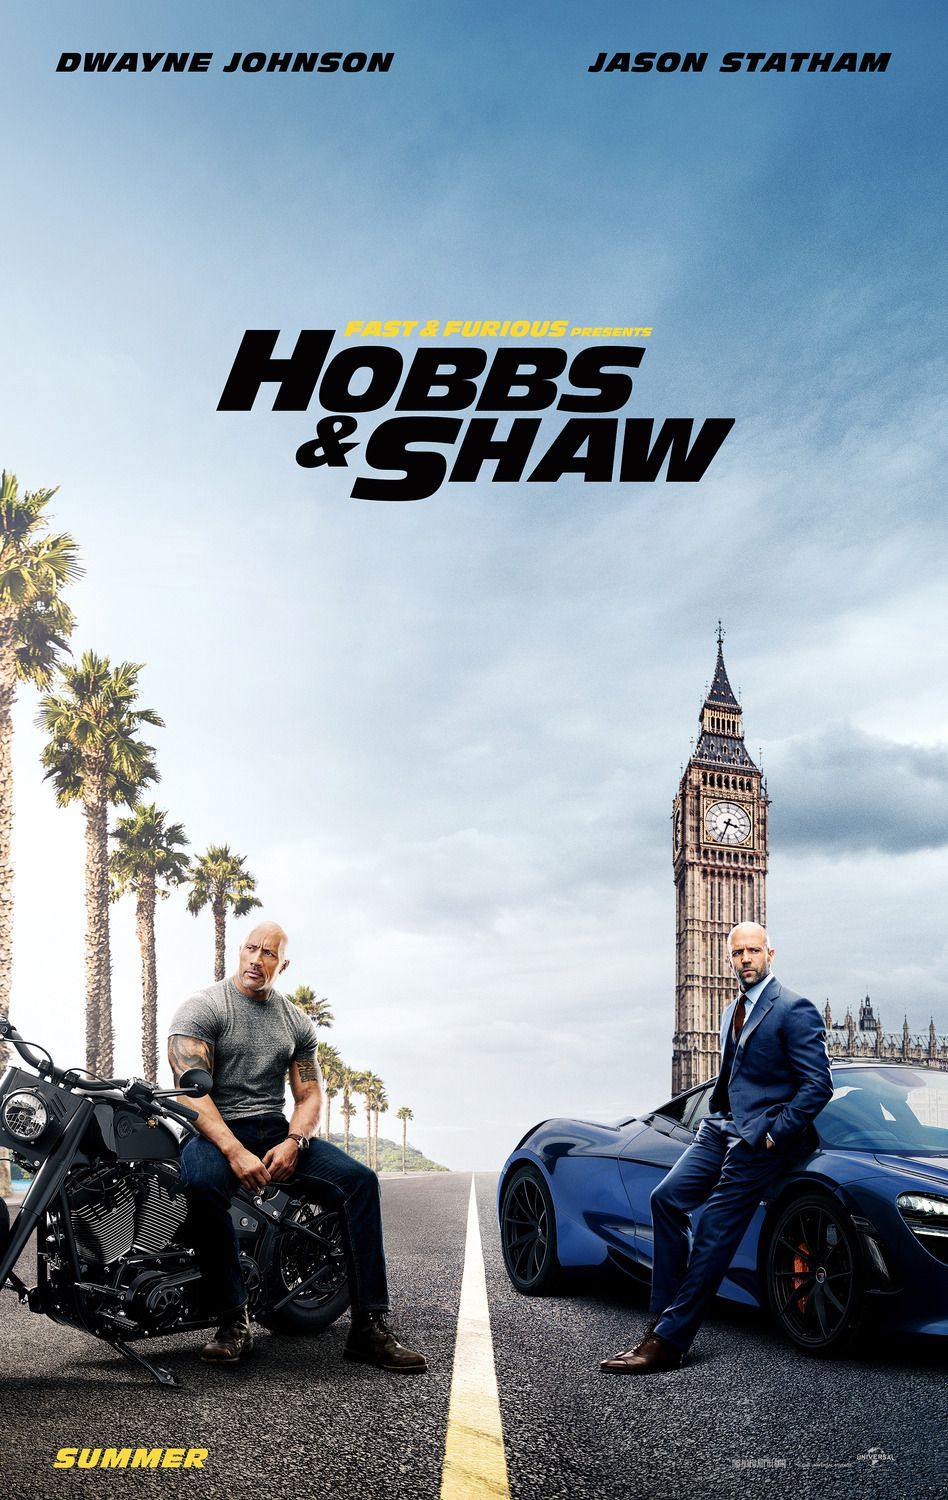 Hobbs & Shaw (2019) - live action posters collection